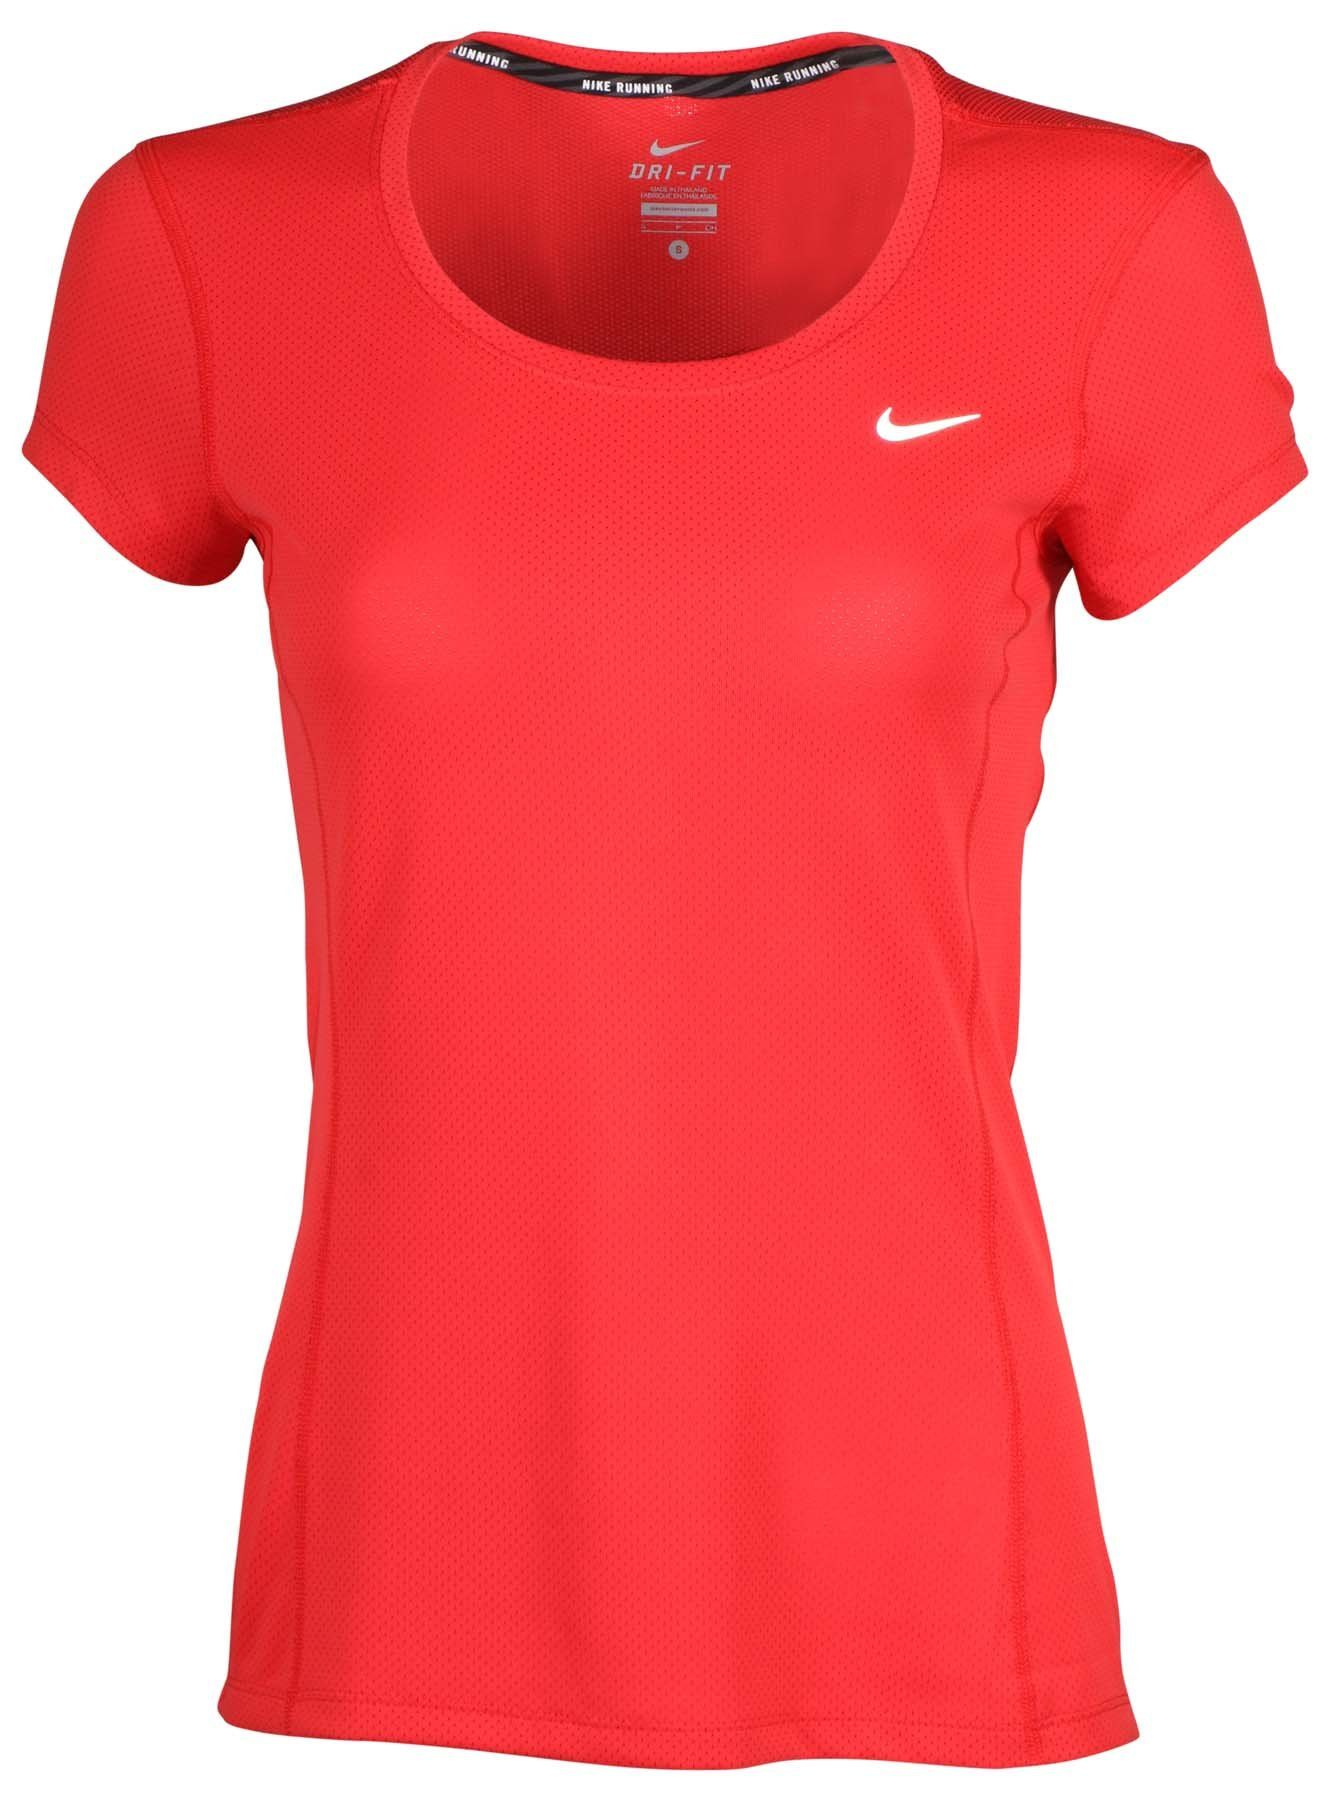 ad9534f7ad32 Nike Women s Dri-Fit Contour Short Sleeve Running Shirt-Red-Large. Authentic